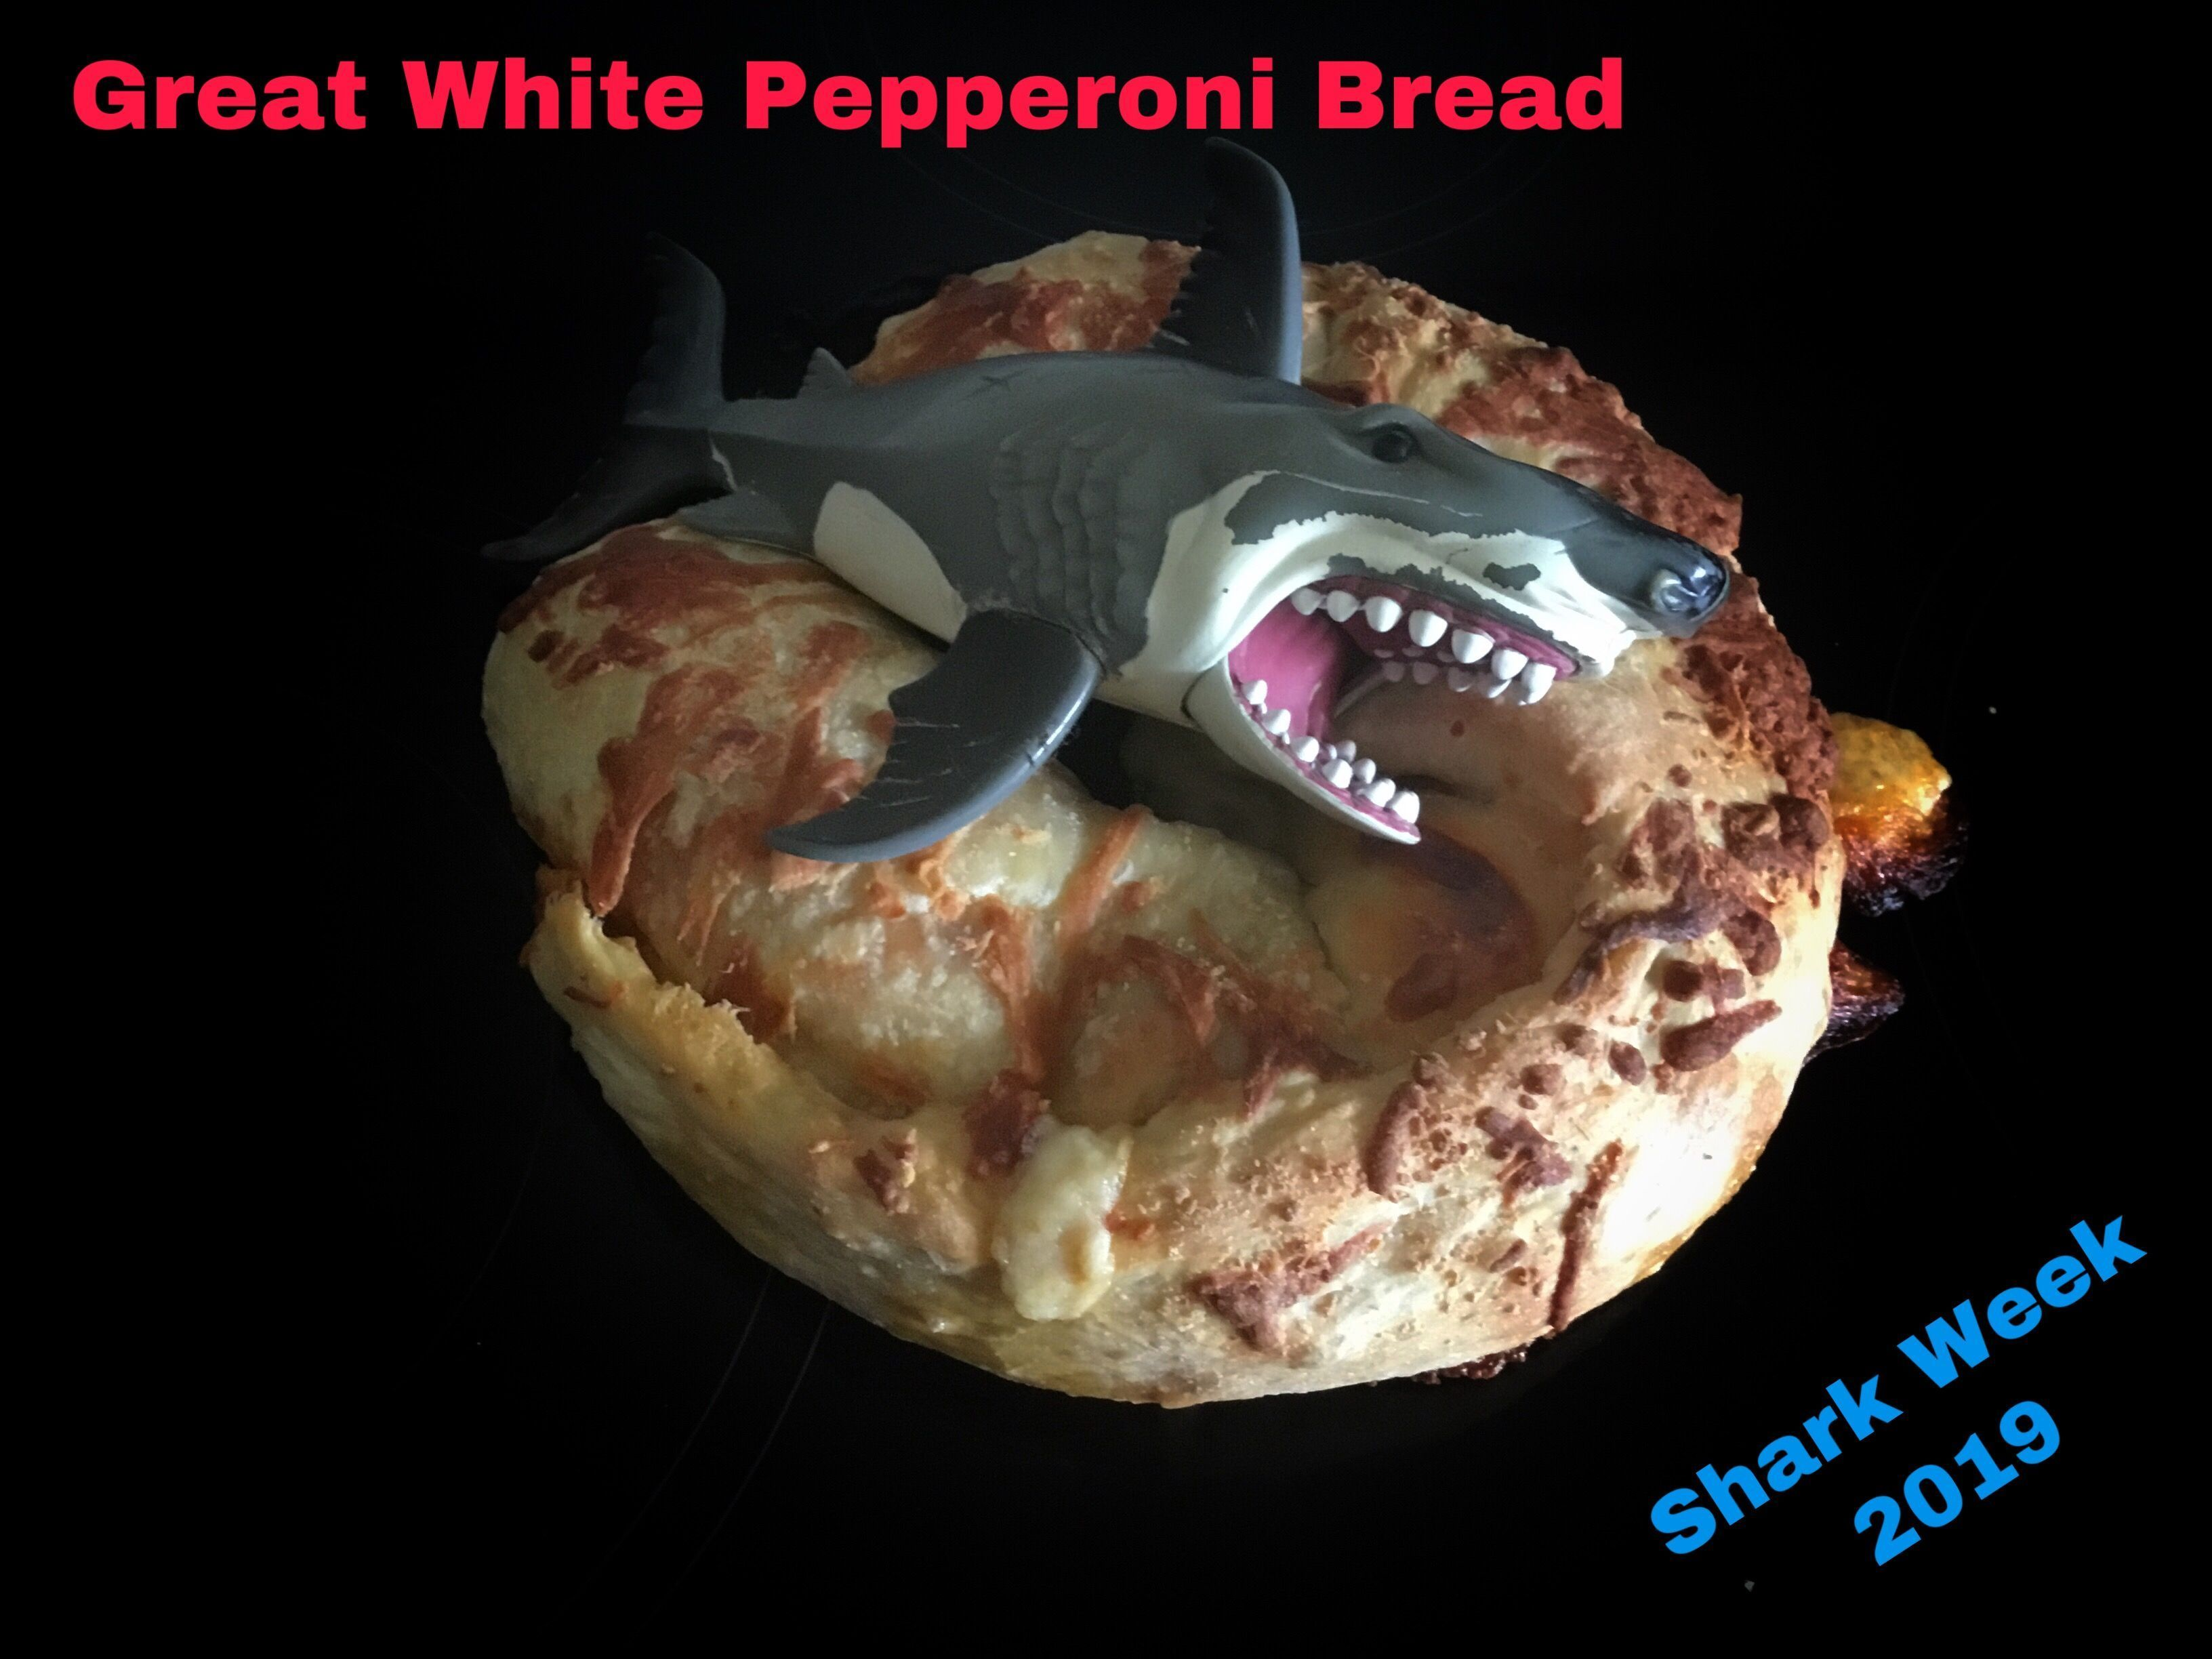 Shark Week Food #sharkweekfood Pepperoni bread, shark week, shark week food, shark week ideas, #Sharkweek , #sharkweekfood , #sharkfoodideas , #shark. #sharkweekfood Shark Week Food #sharkweekfood Pepperoni bread, shark week, shark week food, shark week ideas, #Sharkweek , #sharkweekfood , #sharkfoodideas , #shark. #sharkweekfood